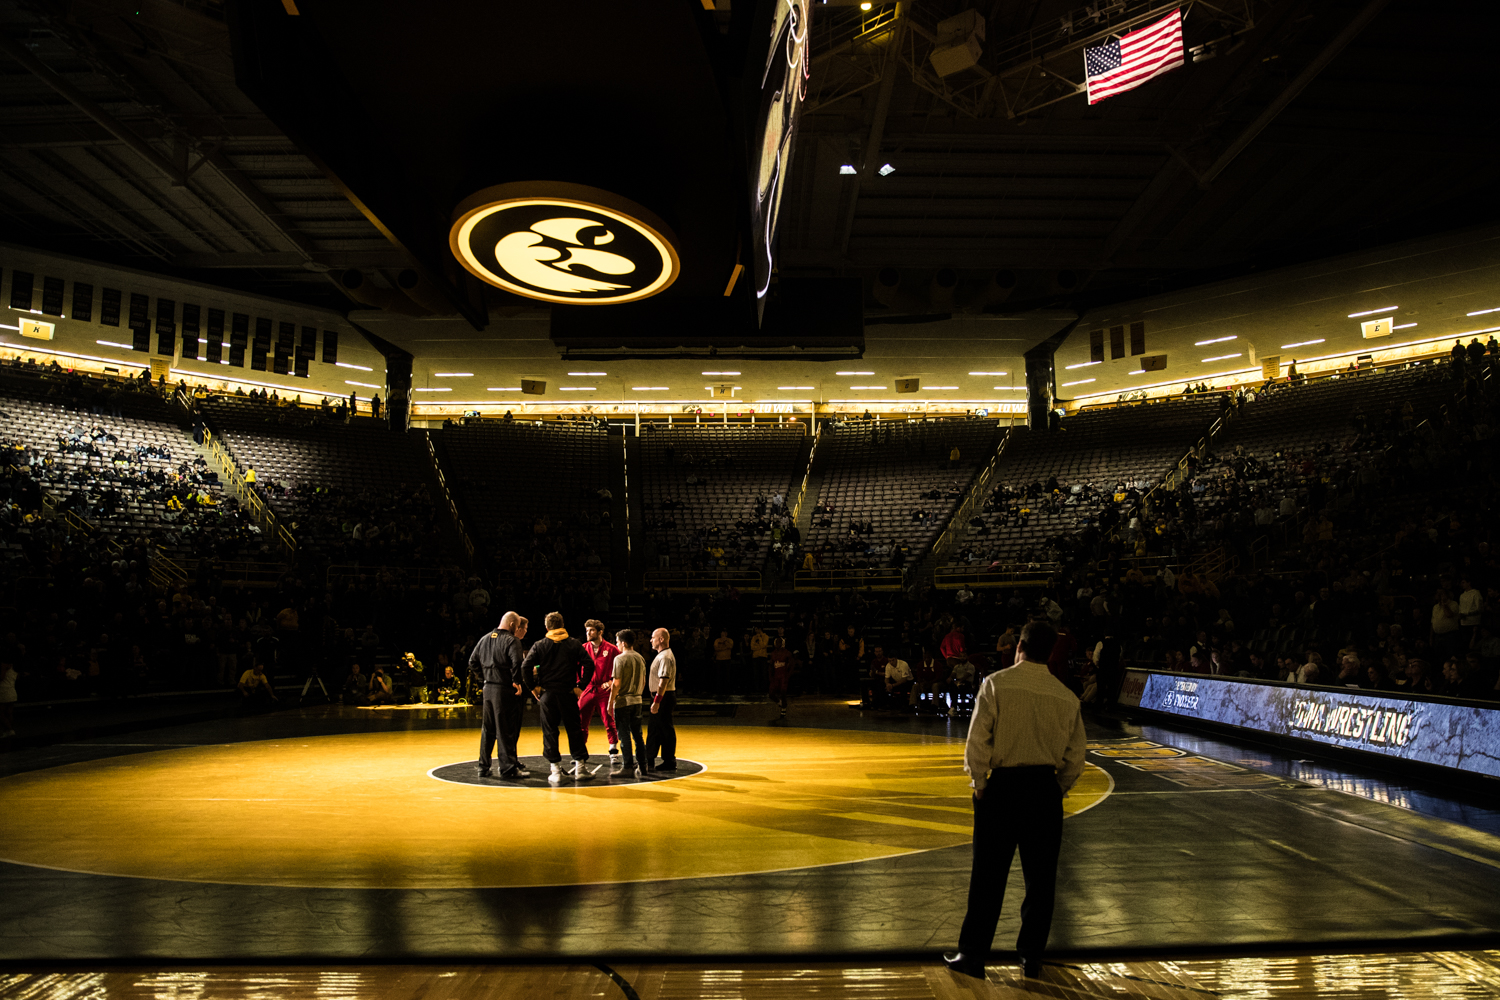 Team+captains+convene+on+the+mat+during+a+wrestling+match+between+Iowa+and+Indiana+at+Carver-Hawkeye+Arena+on+Friday%2C+February+15%2C+2019.+The+Hawkeyes%2C+celebrating+senior+night%2C+defeated+the+Hoosiers+37-9.